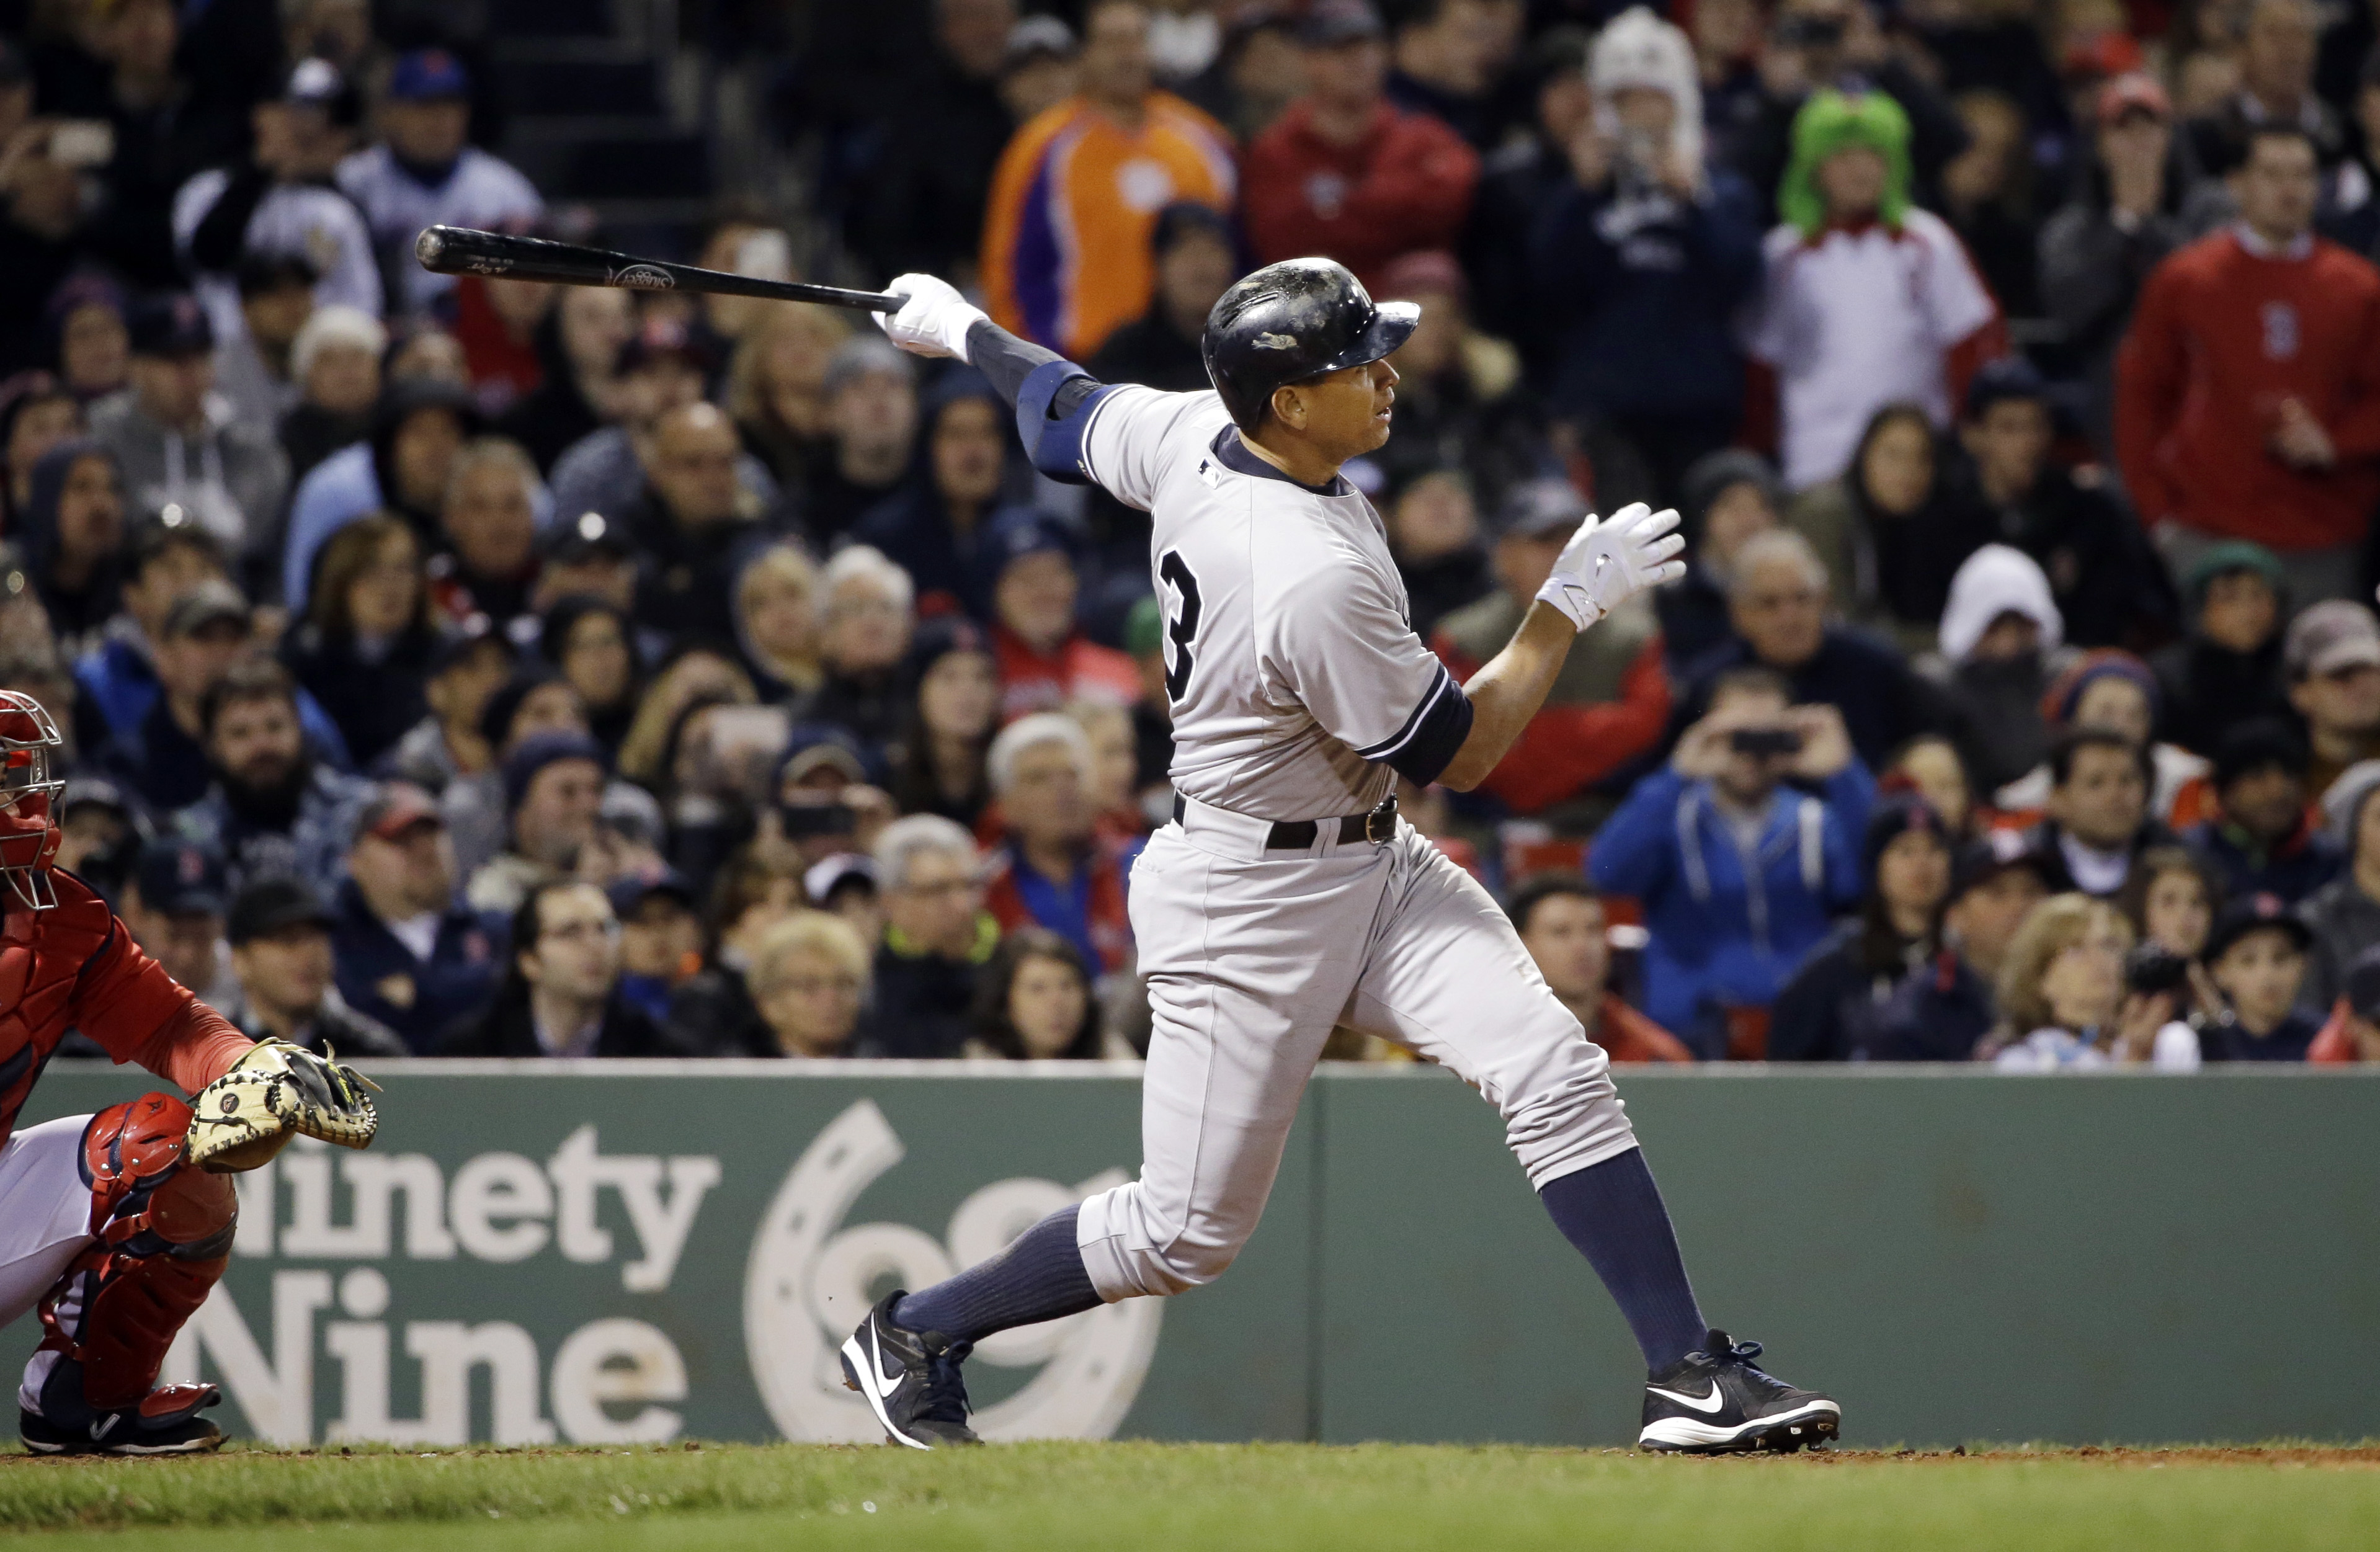 New York Yankees pinch hitter Alex Rodriguez hits a solo homer in the eighth inning of a baseball game against the Boston Red Sox at Fenway Park in Boston, Friday, May 1, 2015. Rodriguez has now tied slugger Willie Mays with 660 career home runs. (AP Phot